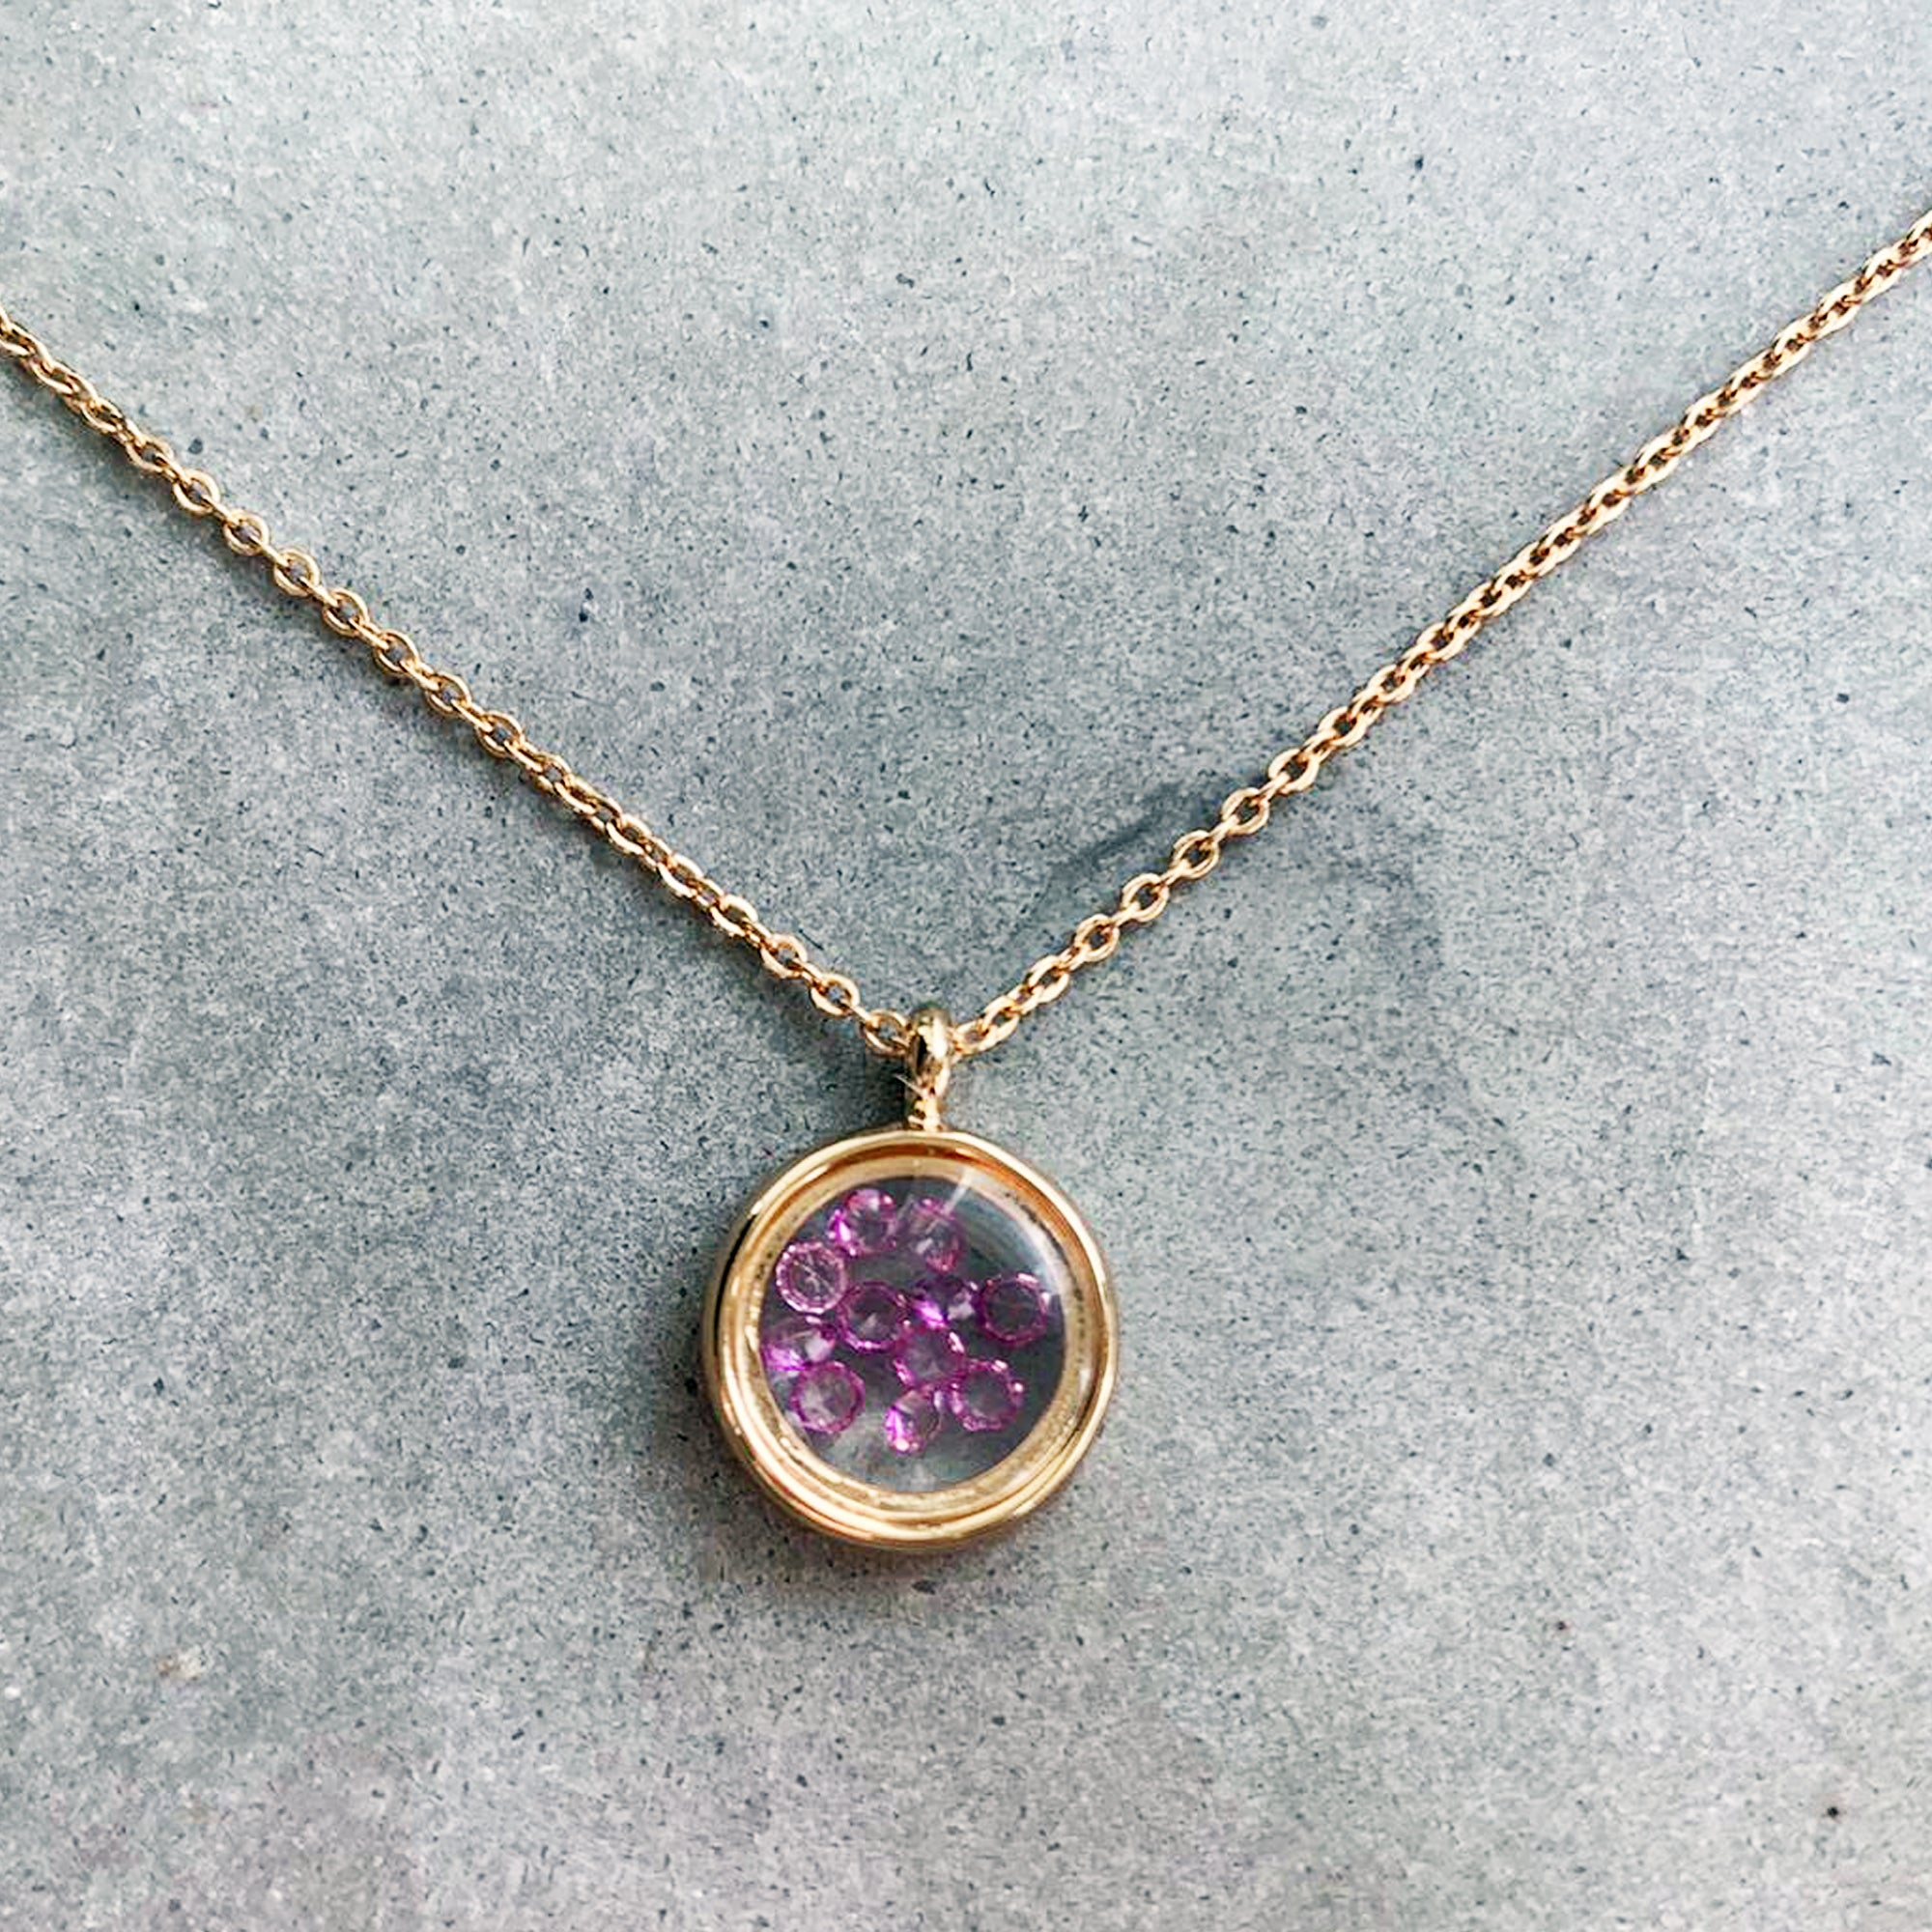 Gold Tone Glass Pendant Necklace with Purple Crystals